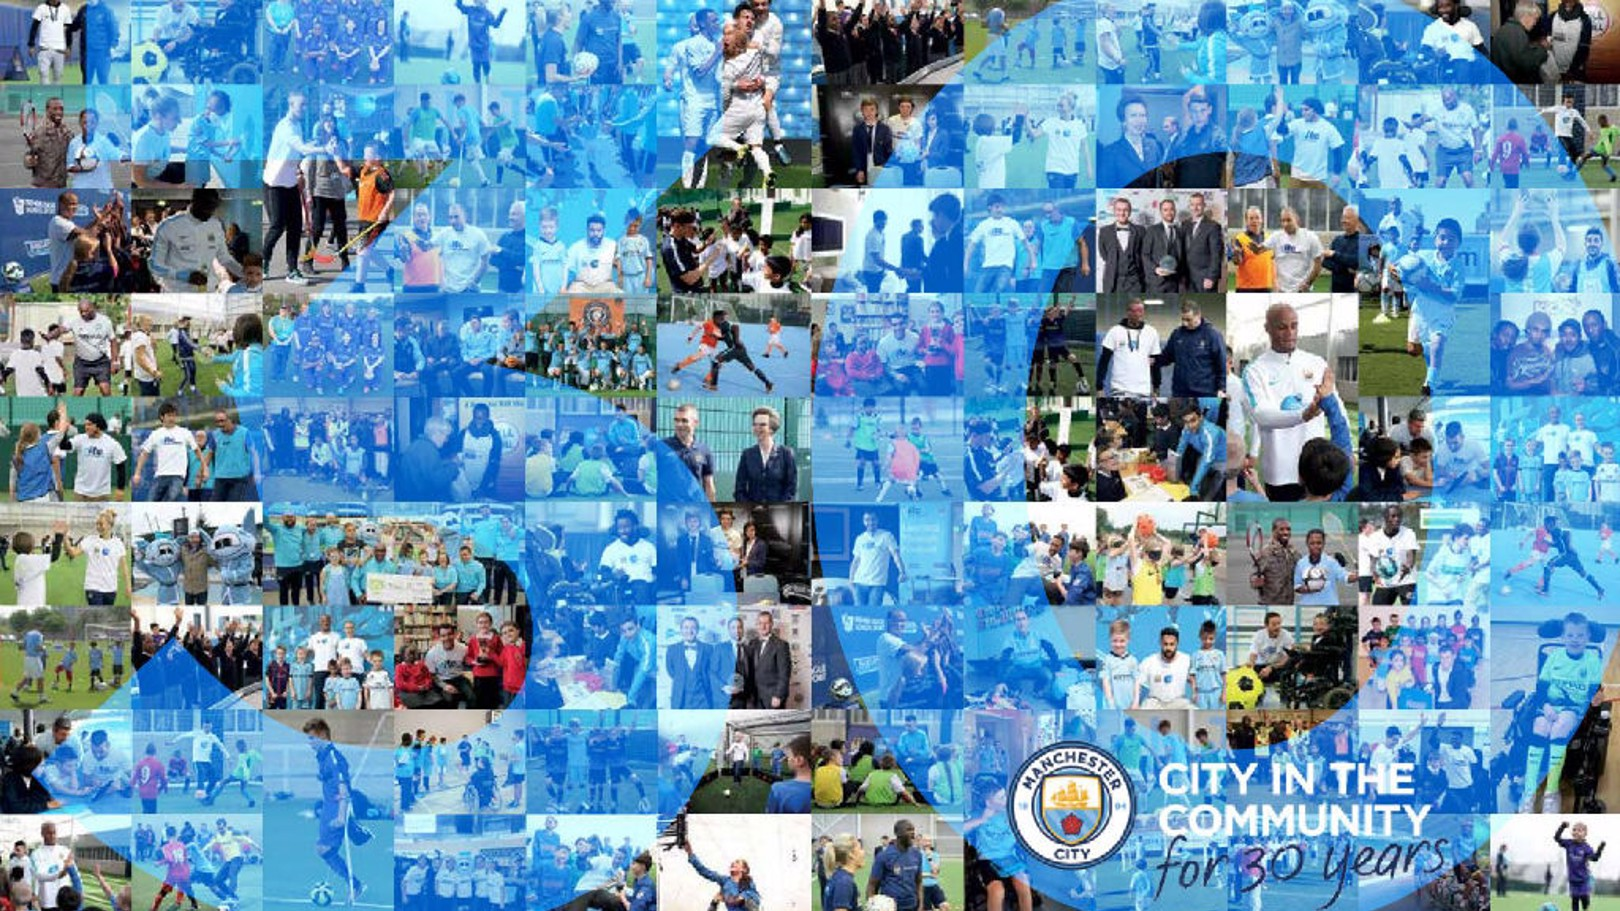 30 years of CITC: In numbers